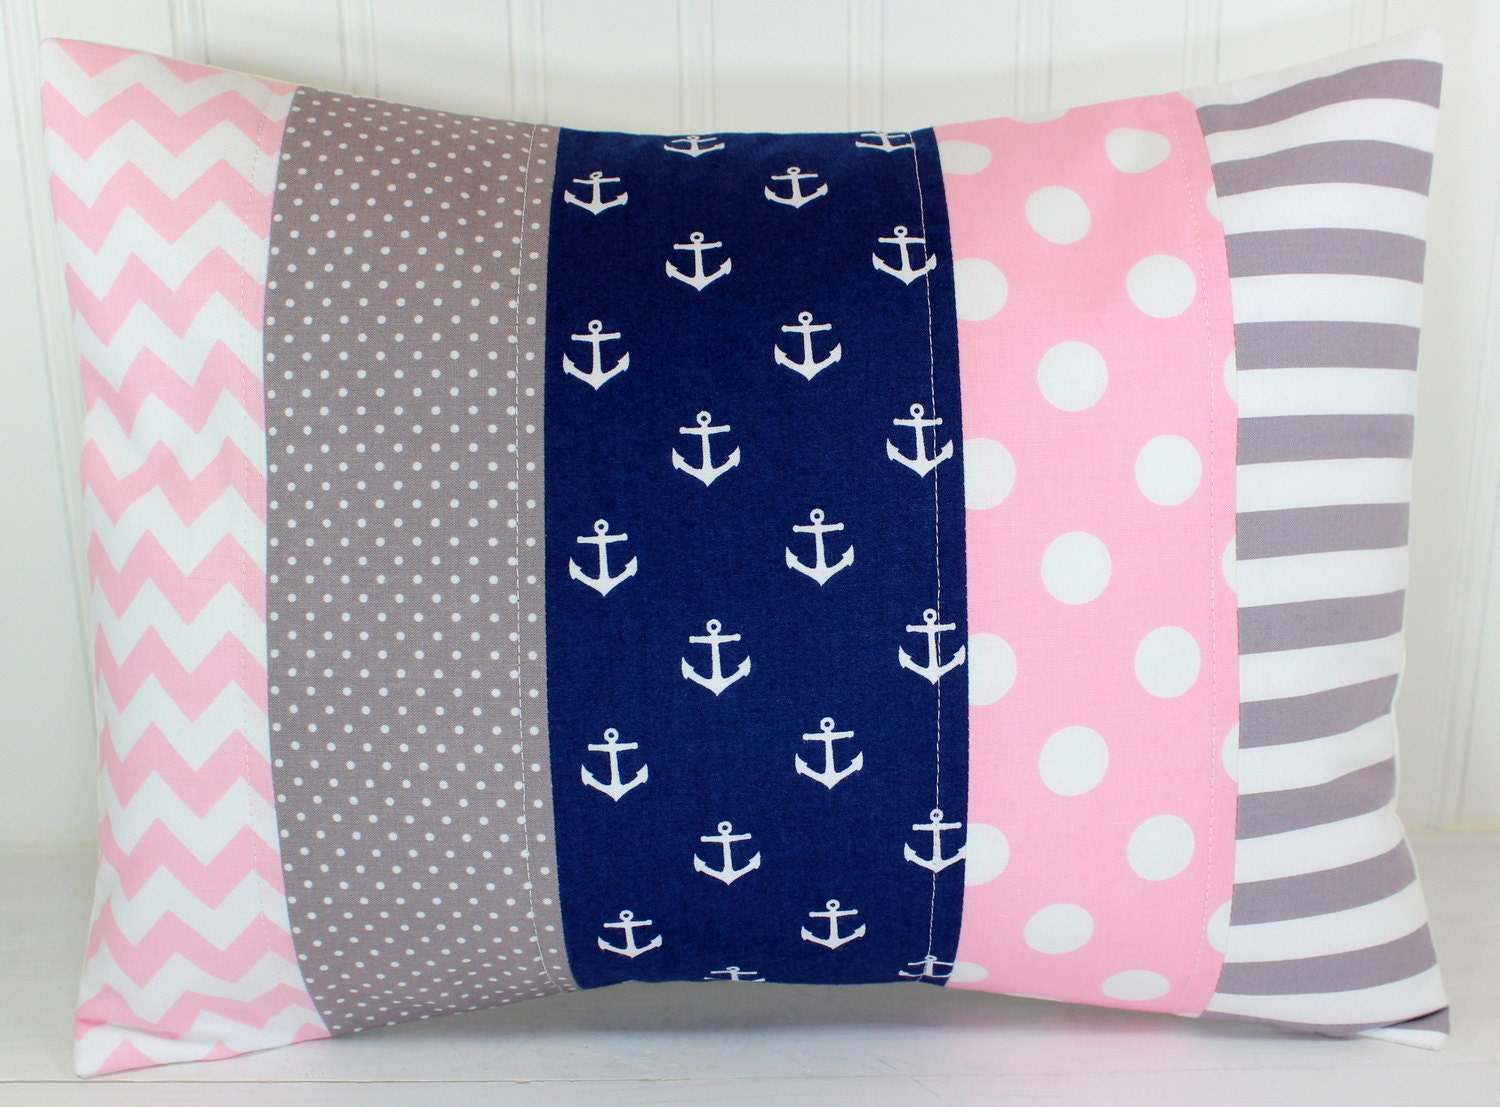 Throw Pillow For Nursery : Nursery Pillow Cover Throw Pillow Cover Anchor by theredpistachio